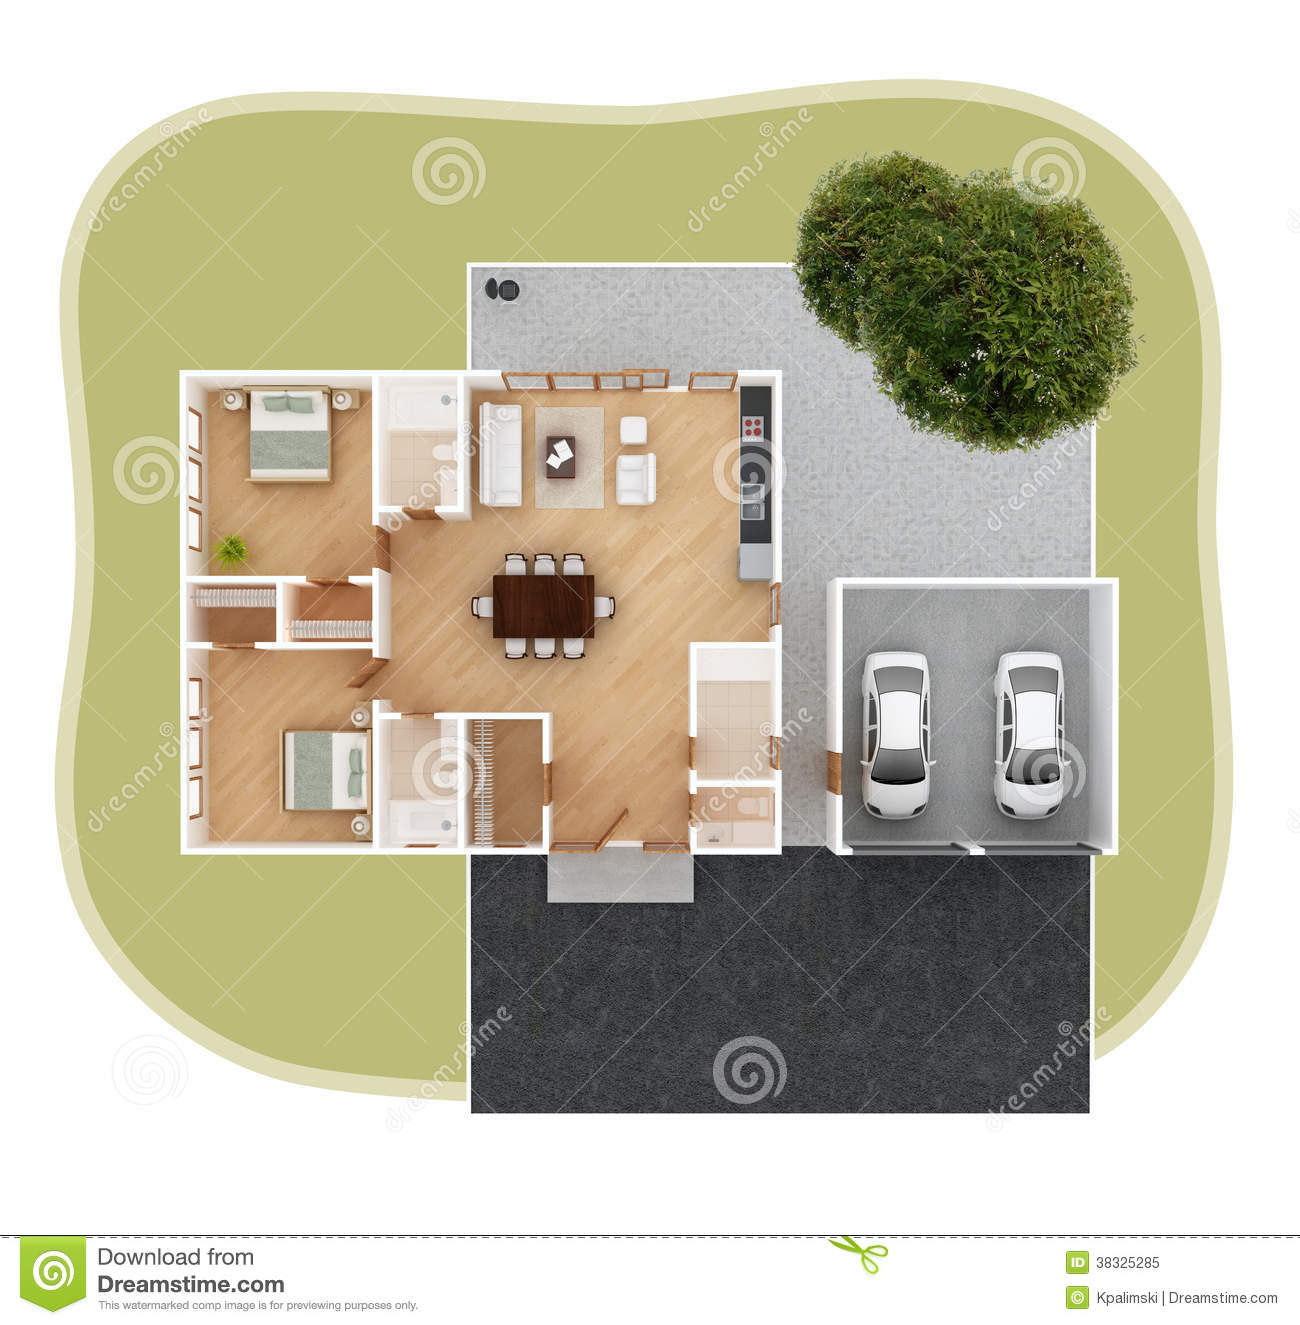 House Plan Top View Royalty Free Stock Photo